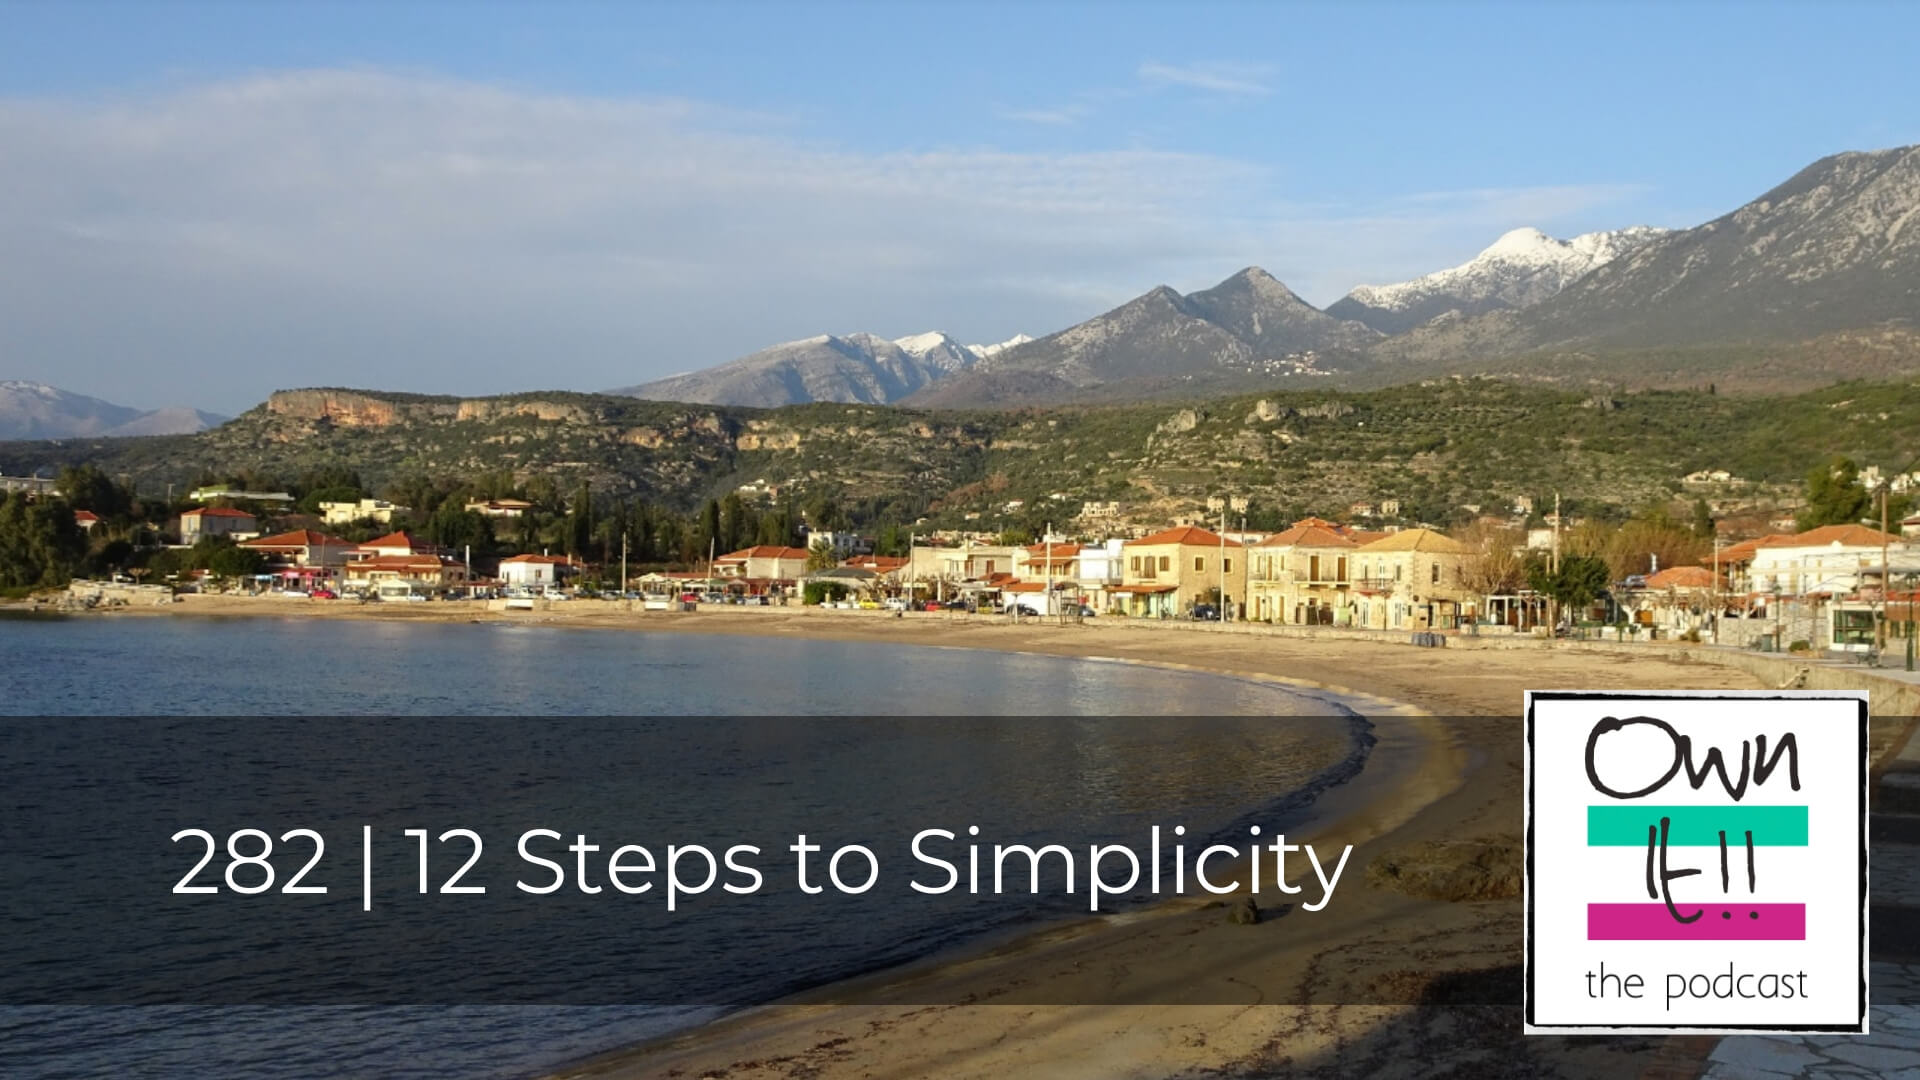 Own It! 282 | 12 Steps to Simplicity